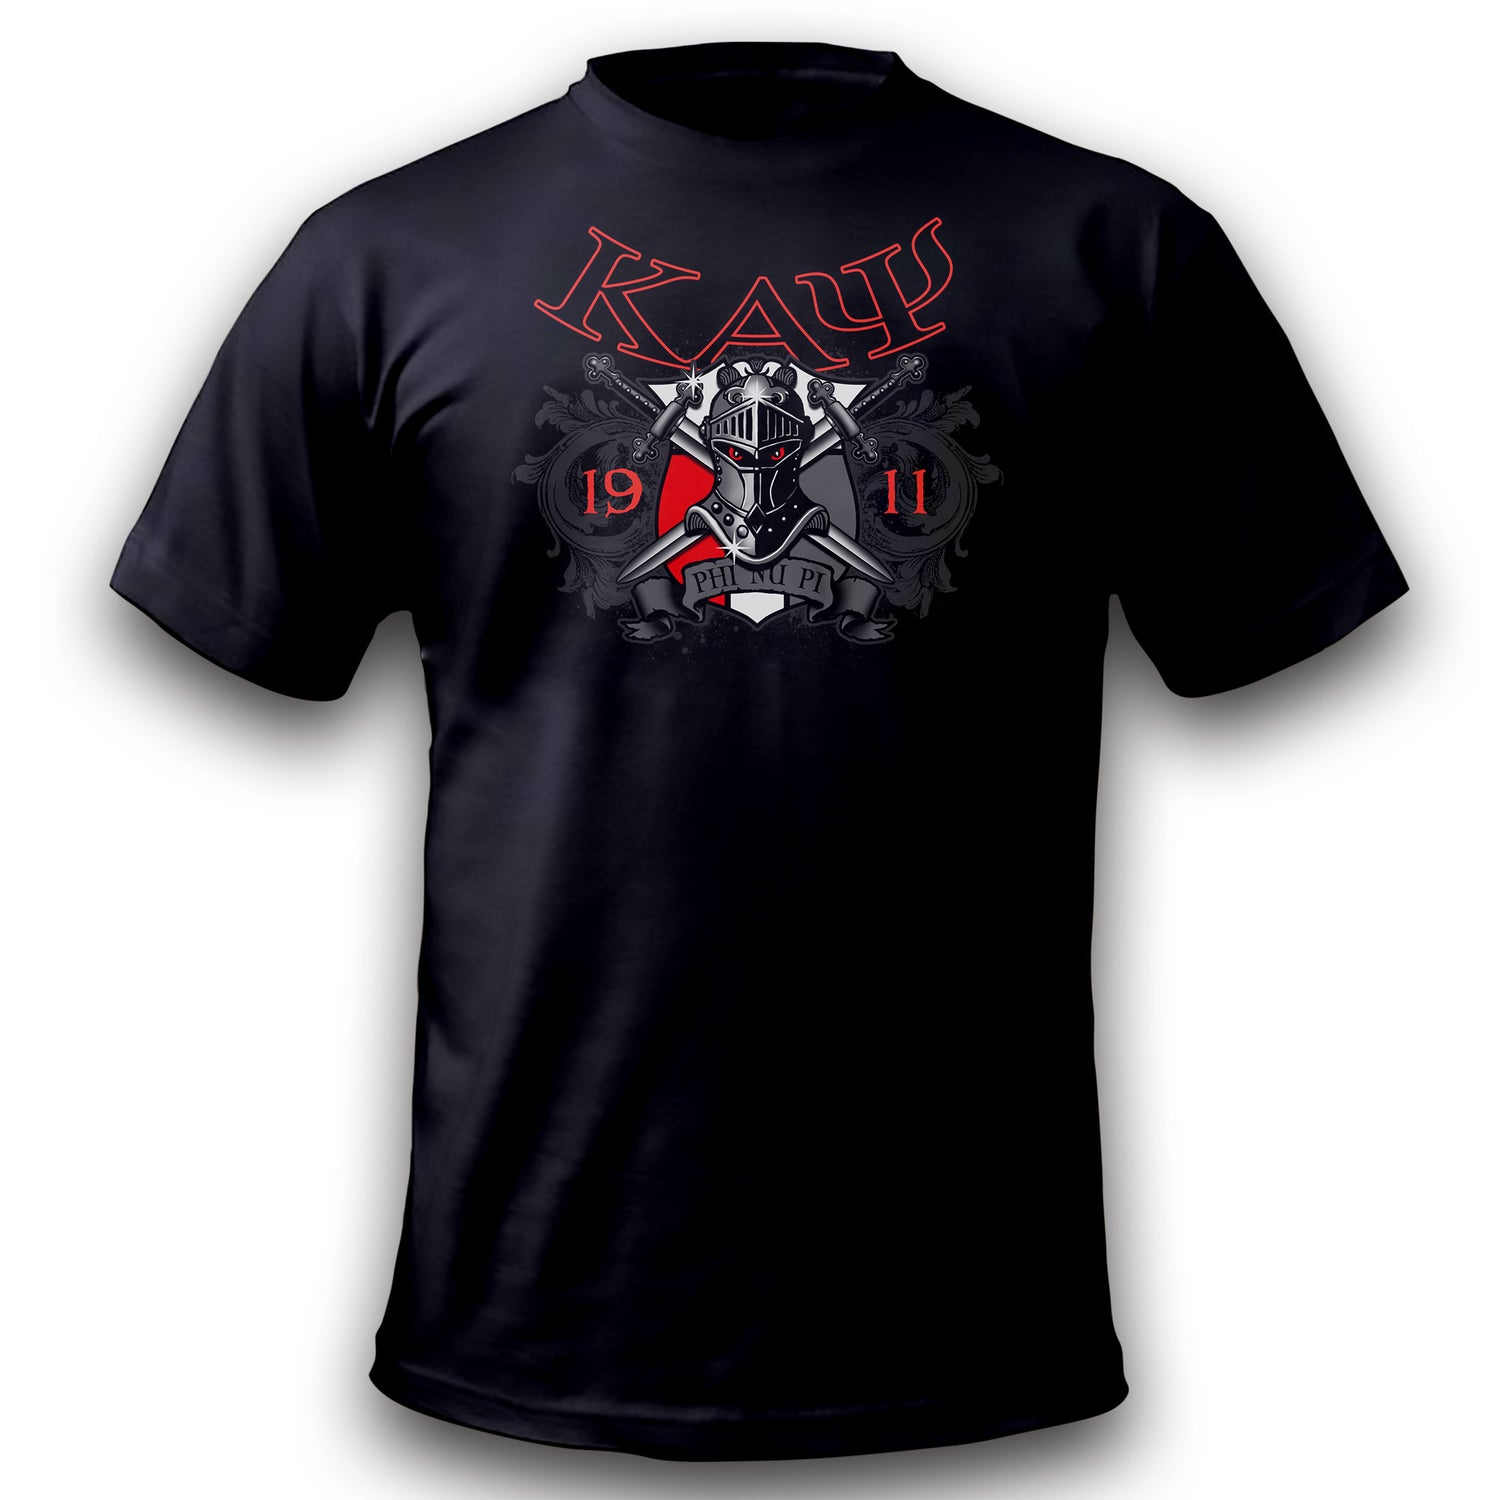 Image of INVICTUS T-SHIRT SCREEN PRINT (Black or Red)